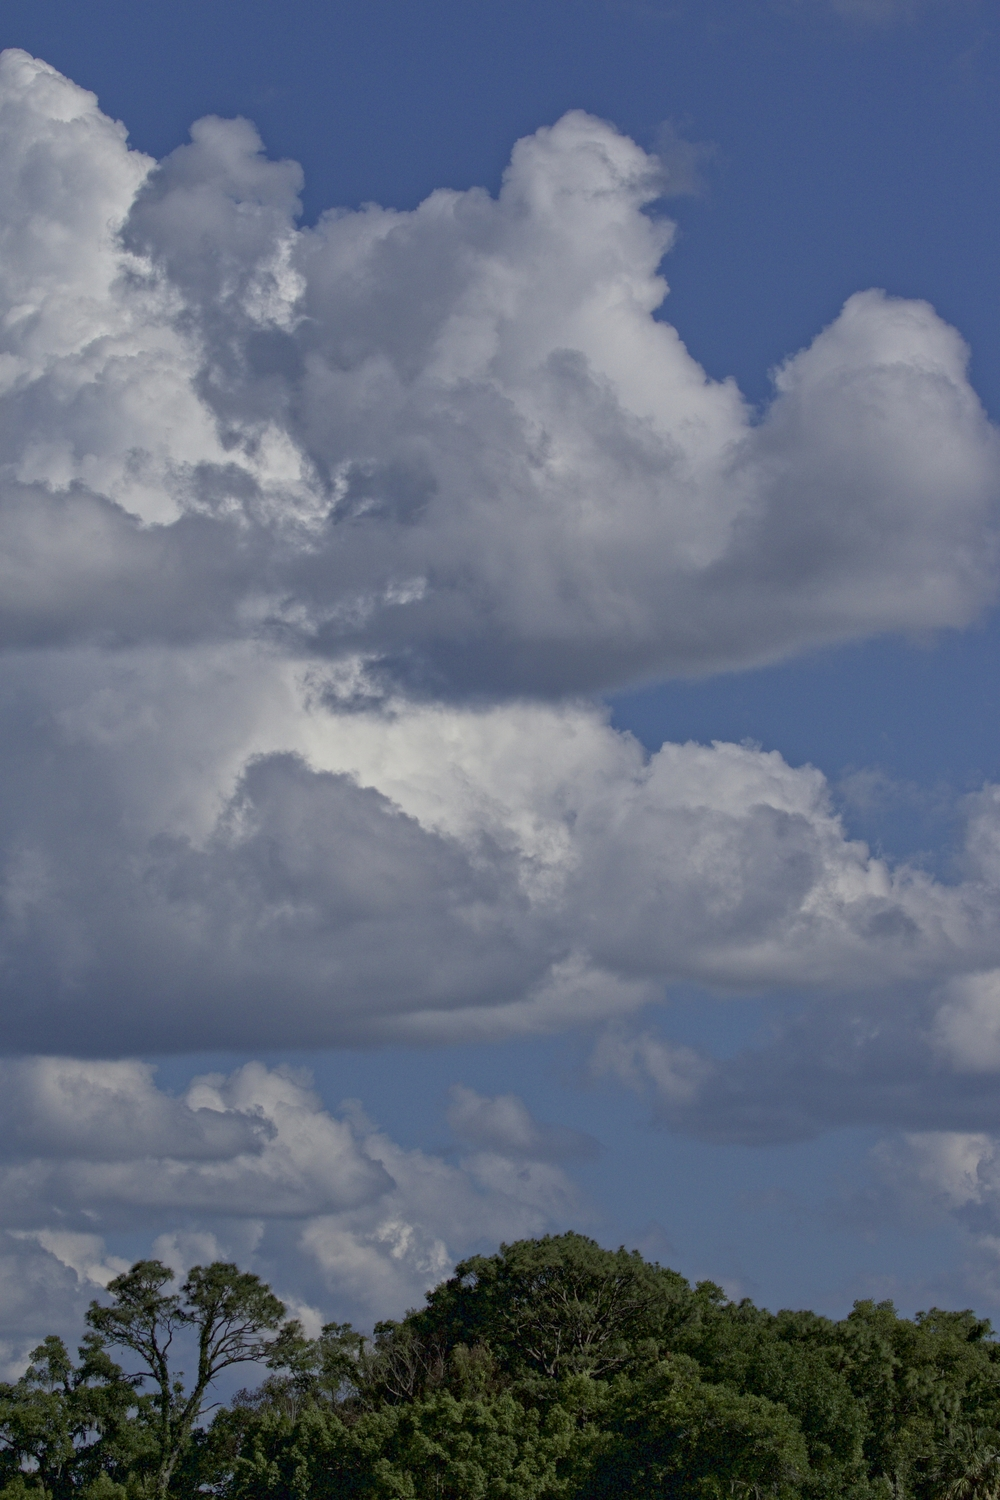 Billowing clouds in the late afternoon over the Broward